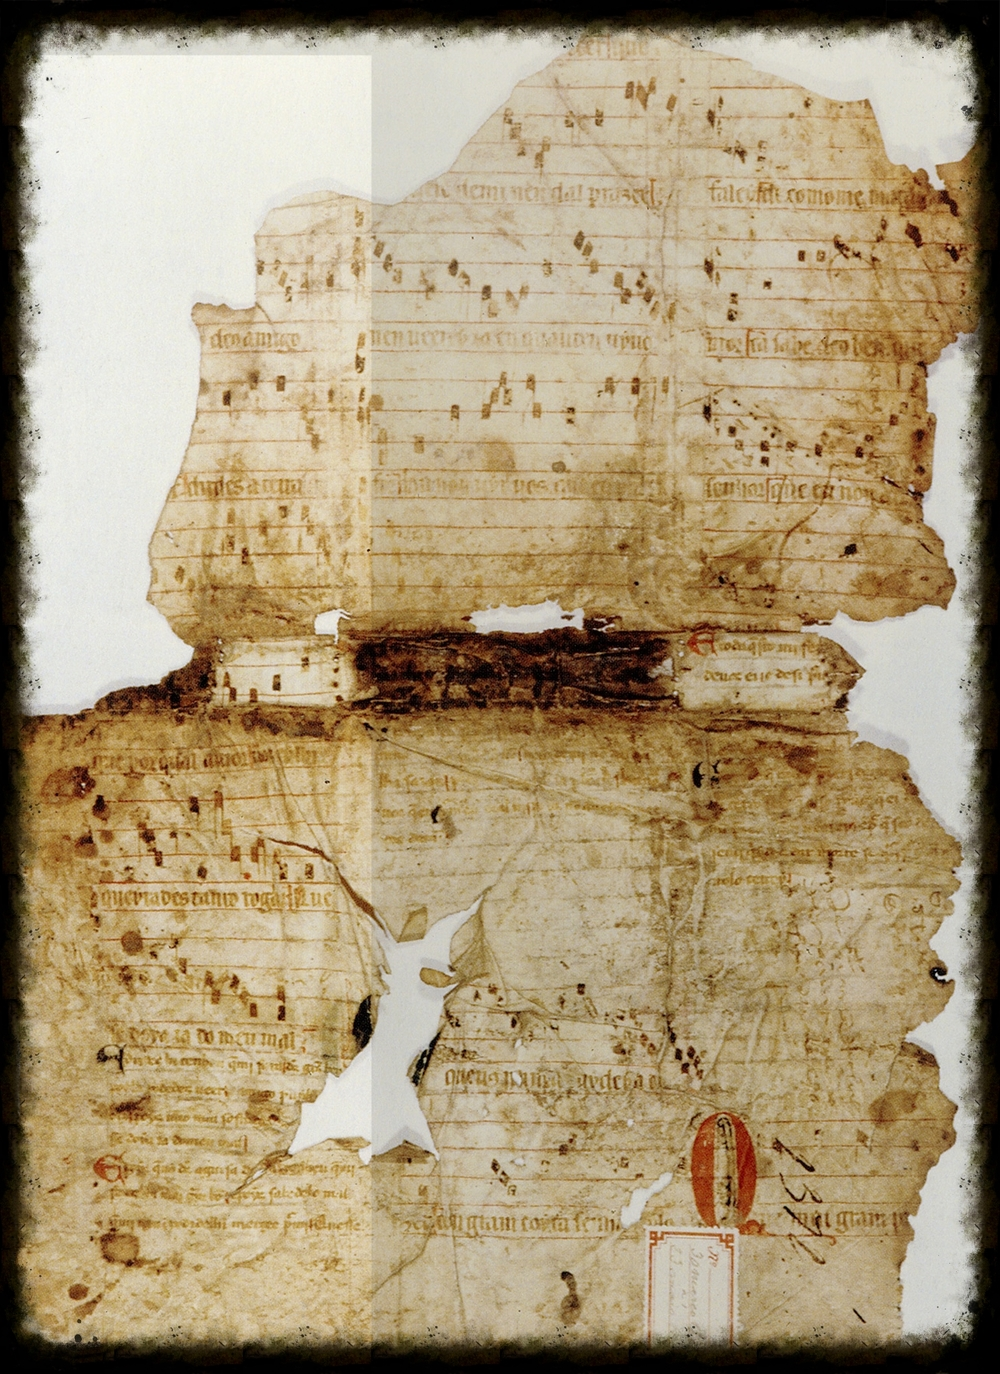 Original manuscript of Pois que vos Deus.